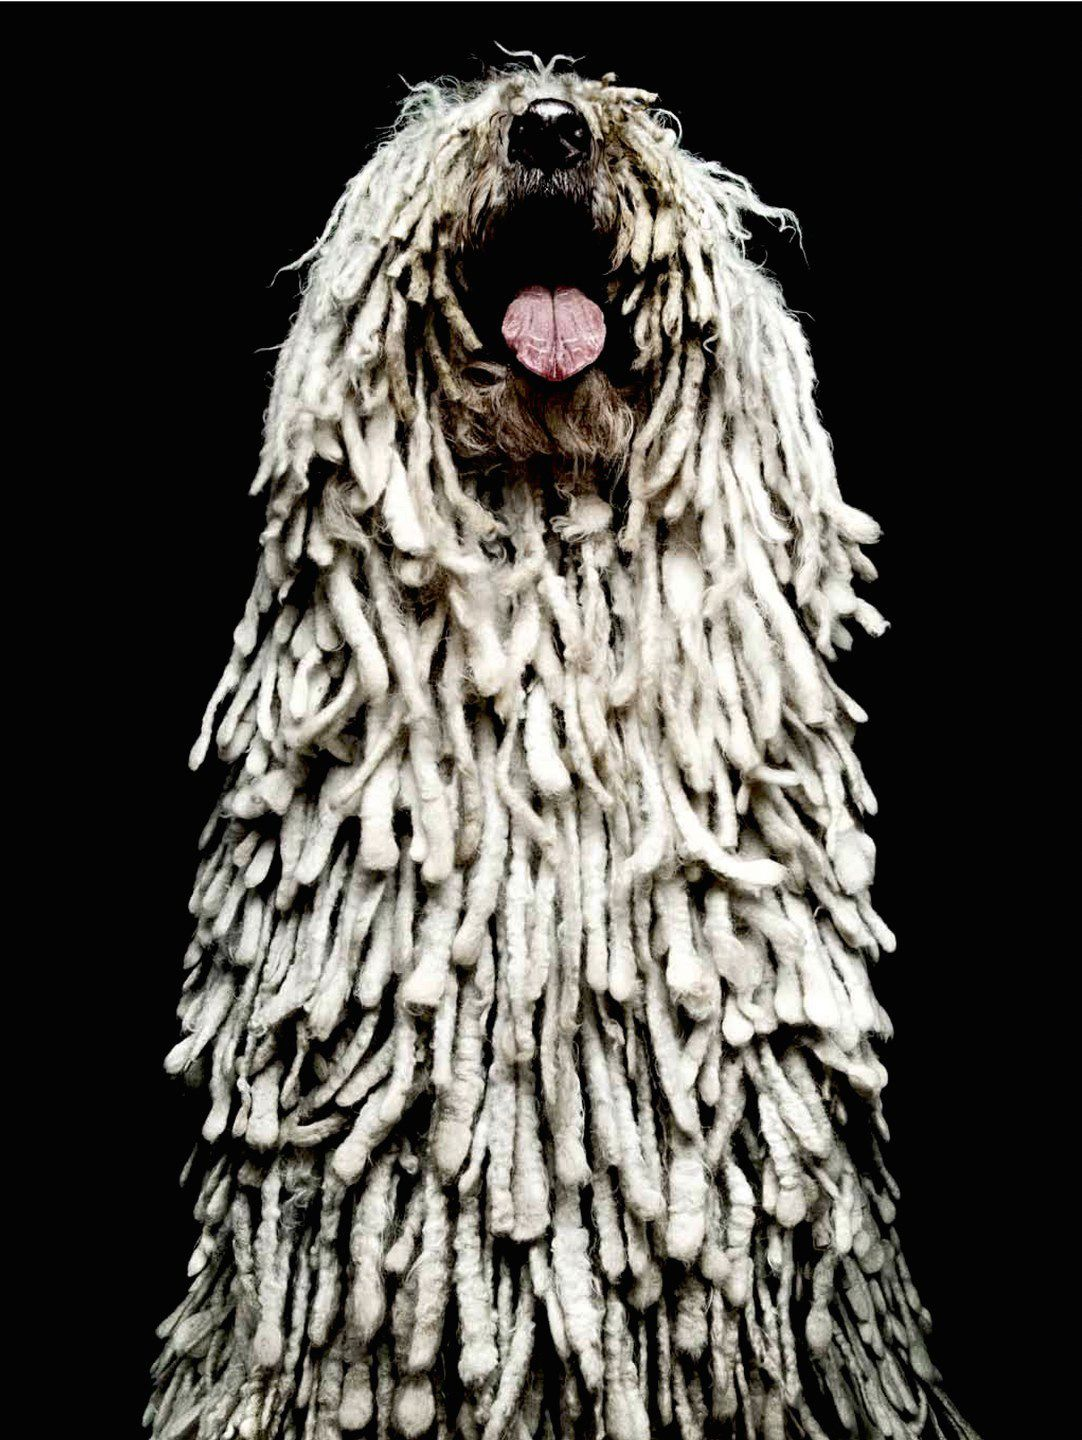 Pin By Lwrightg On Woof Art Dog Breeds Beautiful Dogs Mop Dog